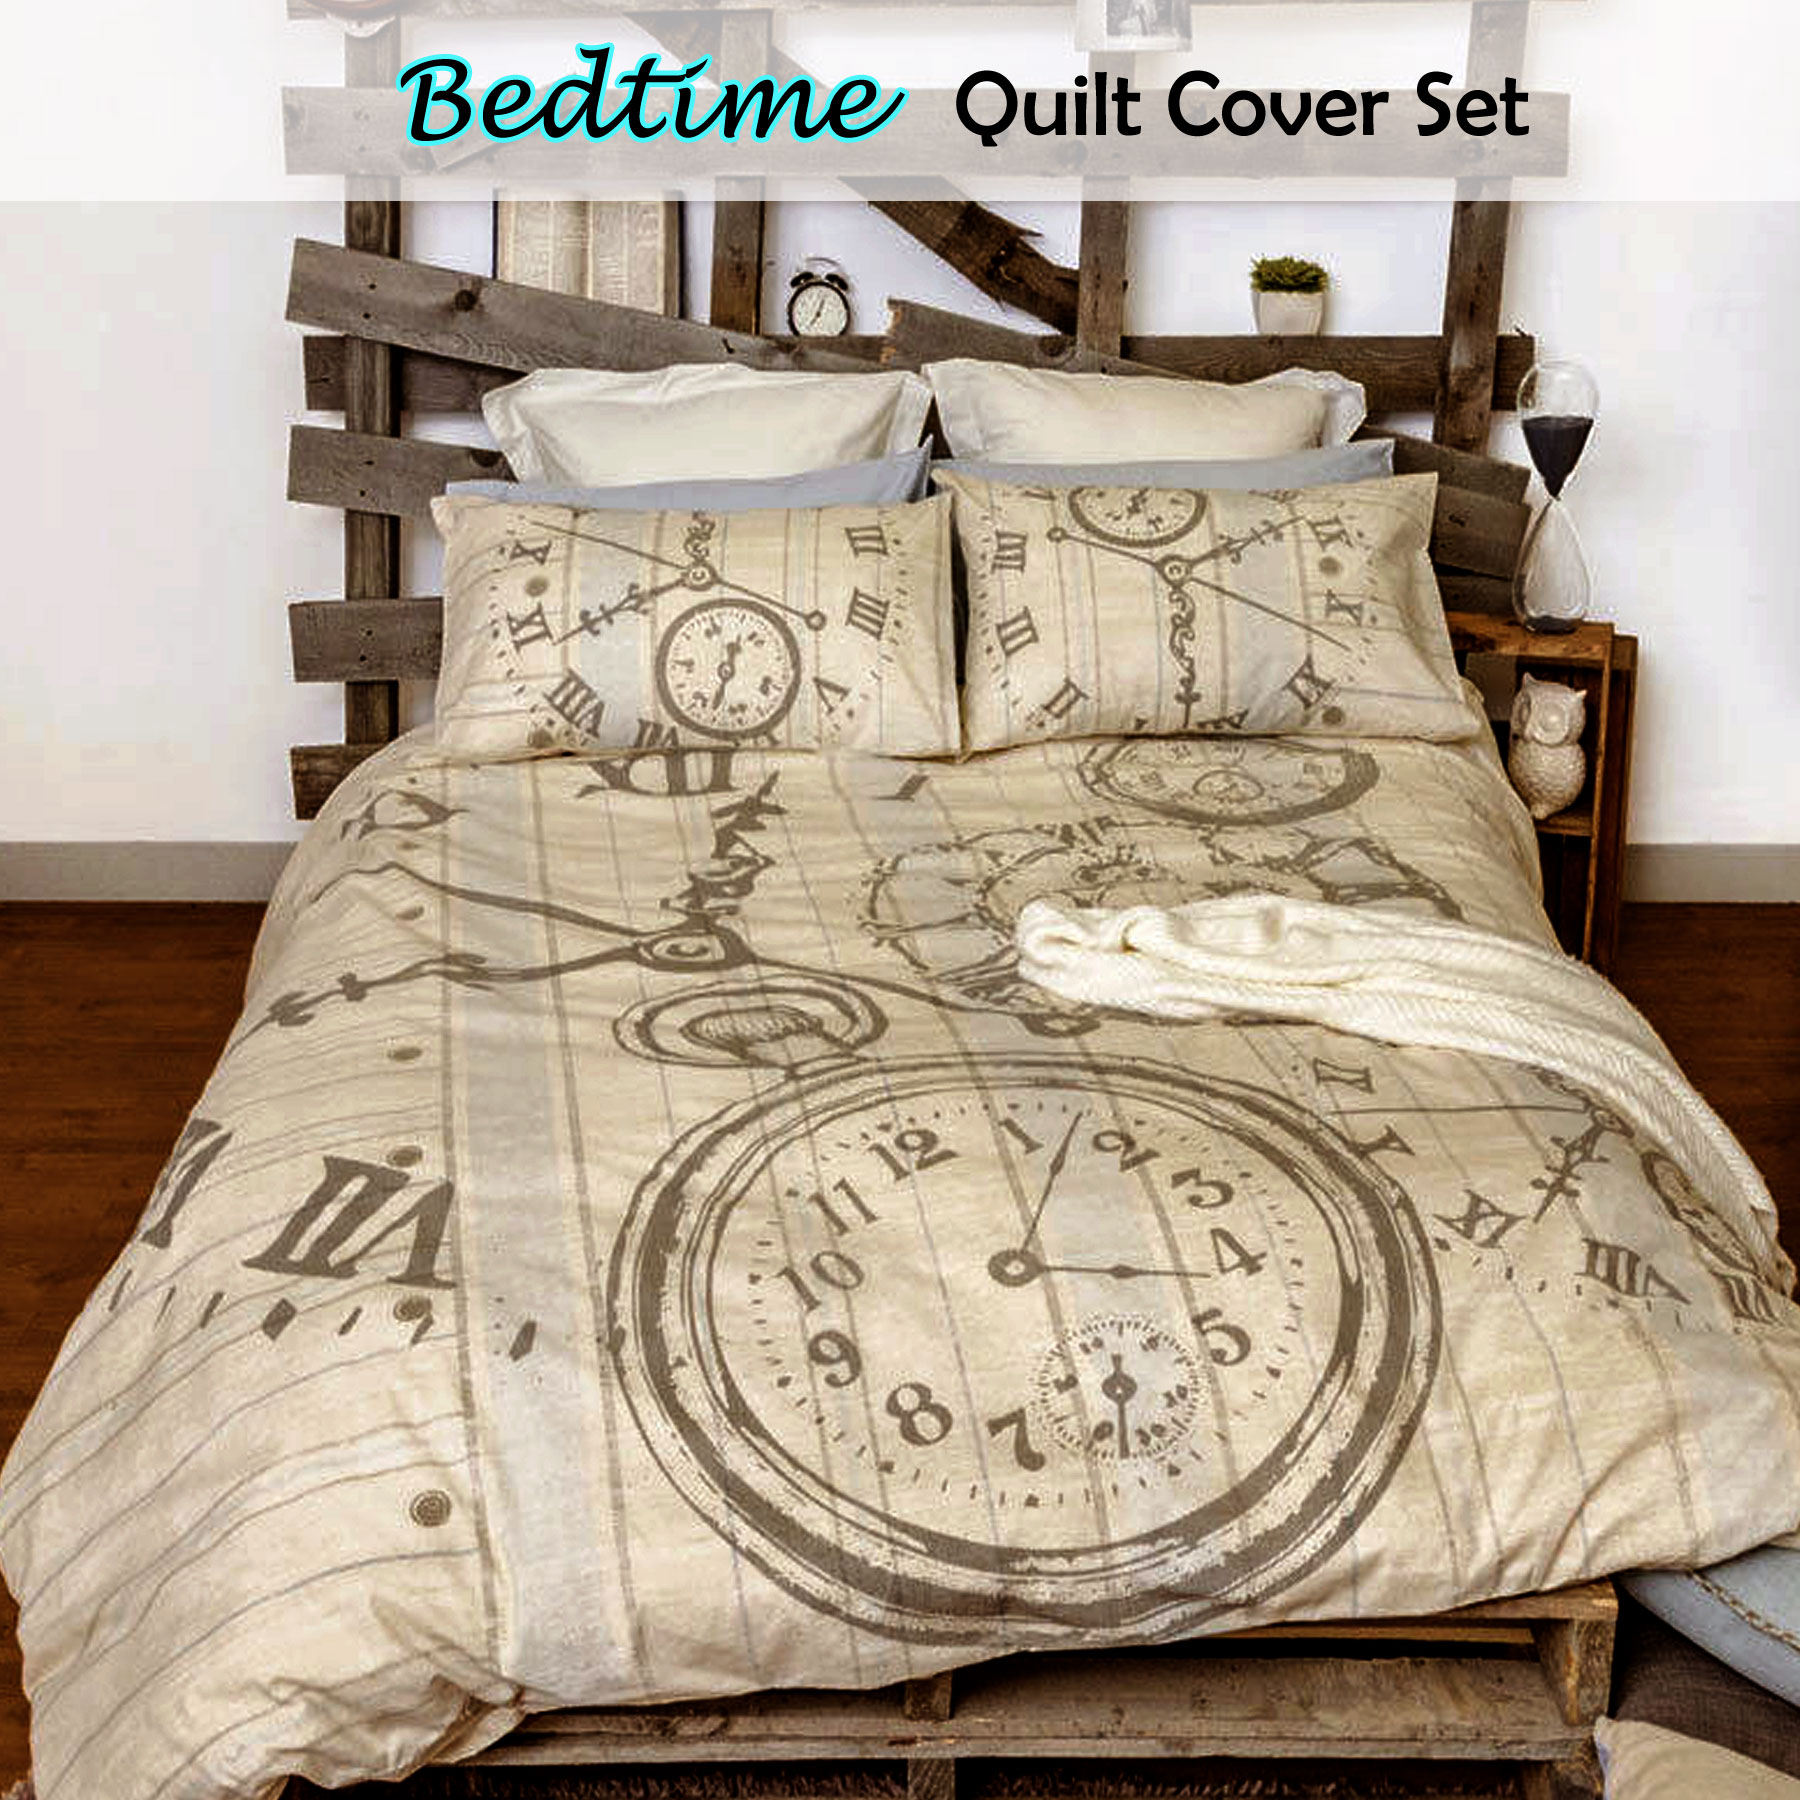 covers interior the neutral of nocrop designers to blush duvet strategist cover best article according